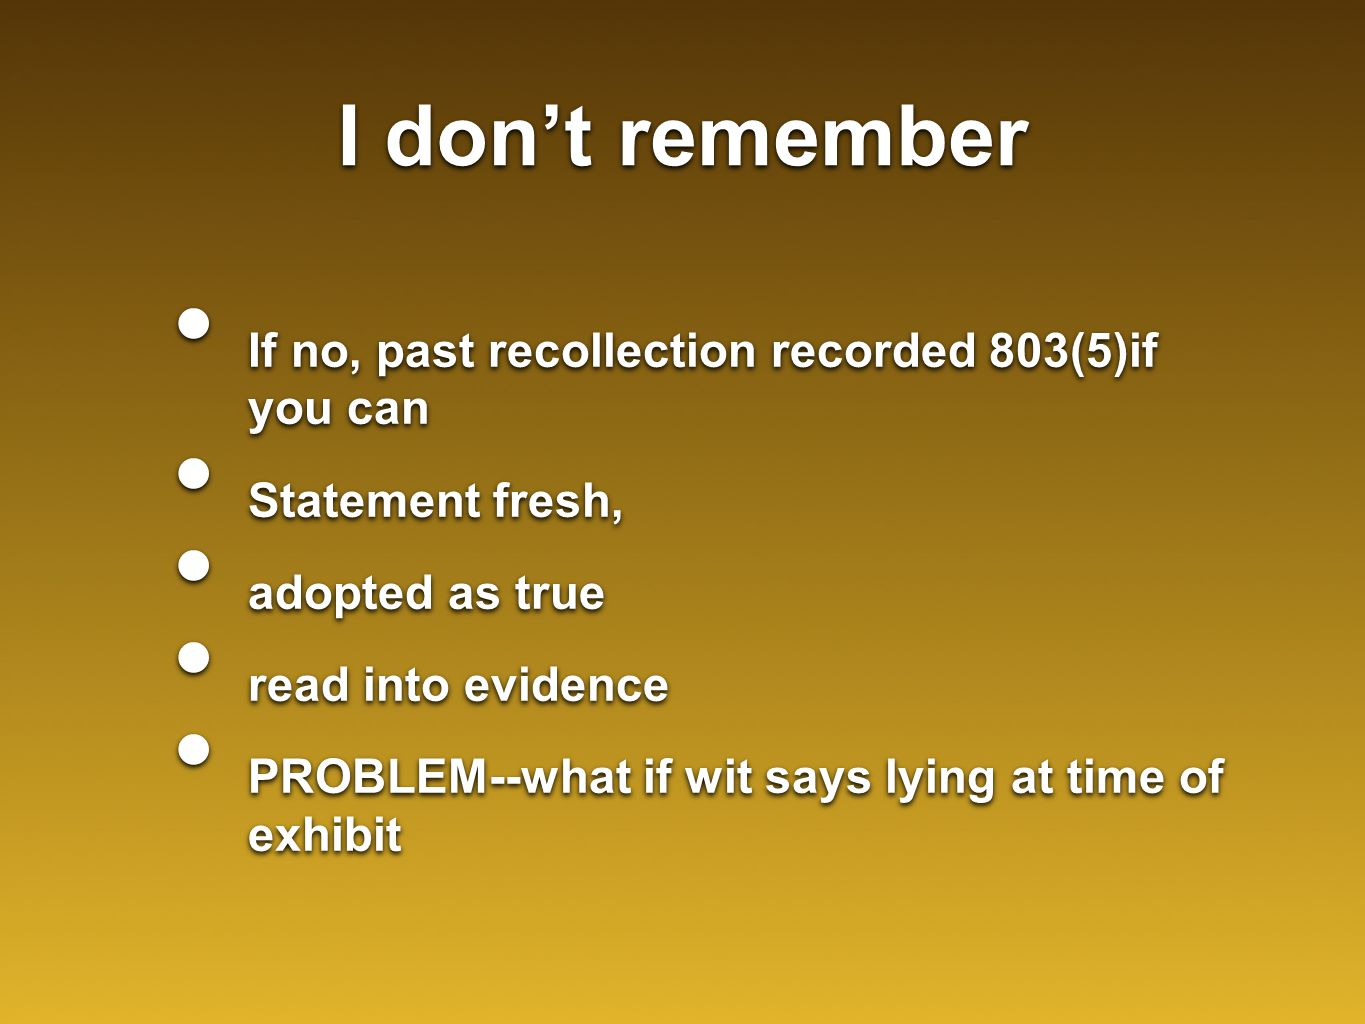 I don't remember If no, past recollection recorded 803(5)if you can Statement fresh, adopted as true read into evidence PROBLEM--what if wit says lying at time of exhibit If no, past recollection recorded 803(5)if you can Statement fresh, adopted as true read into evidence PROBLEM--what if wit says lying at time of exhibit